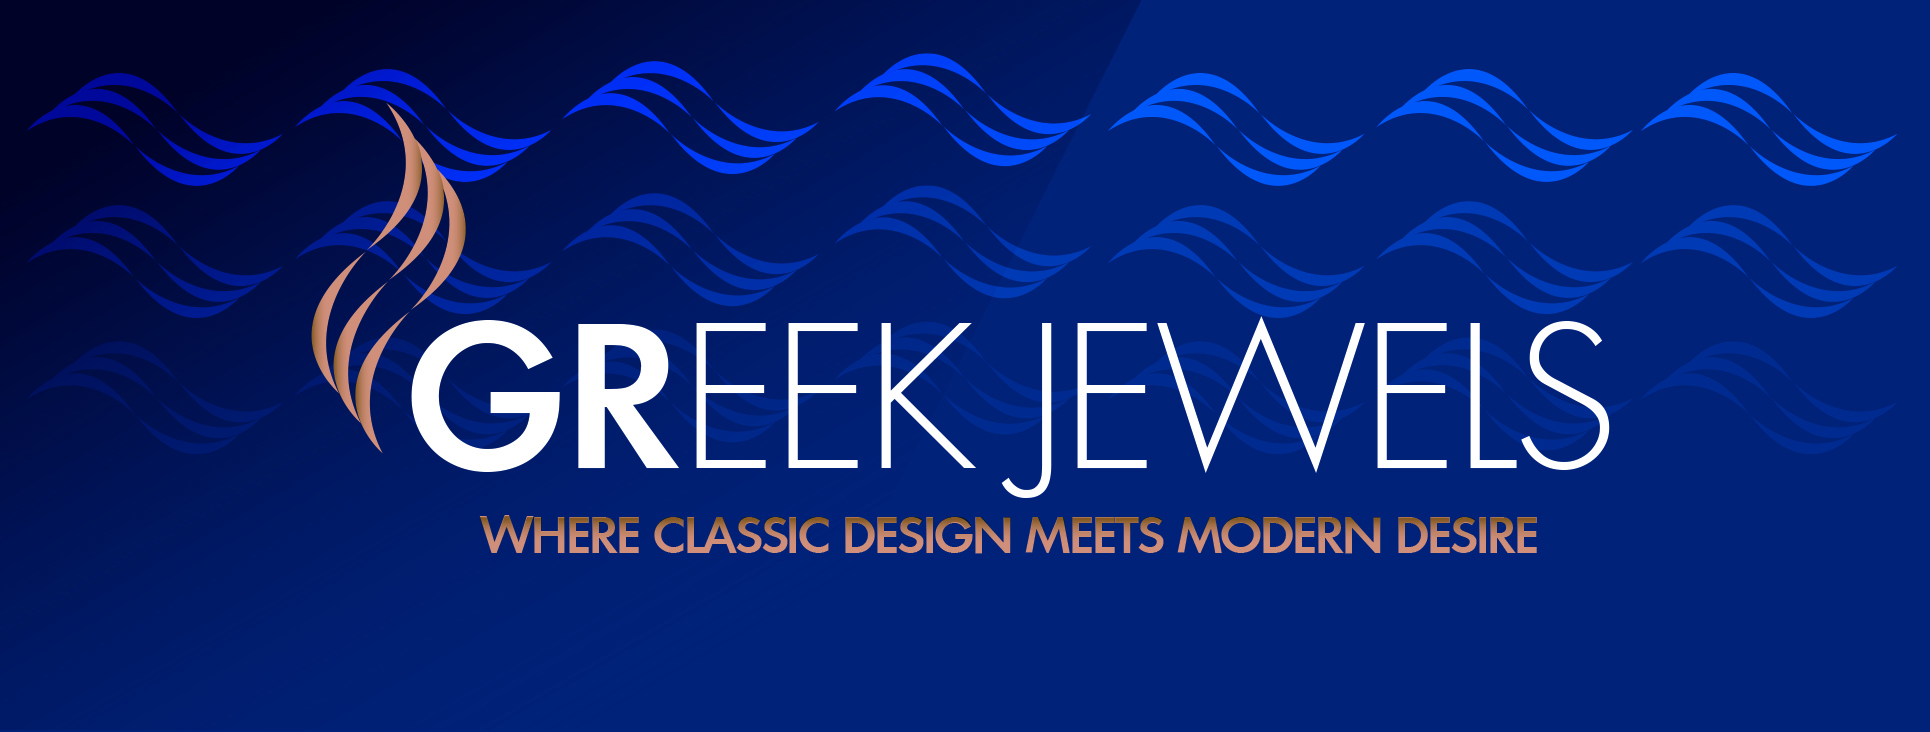 Greek Jewels Logo Blue